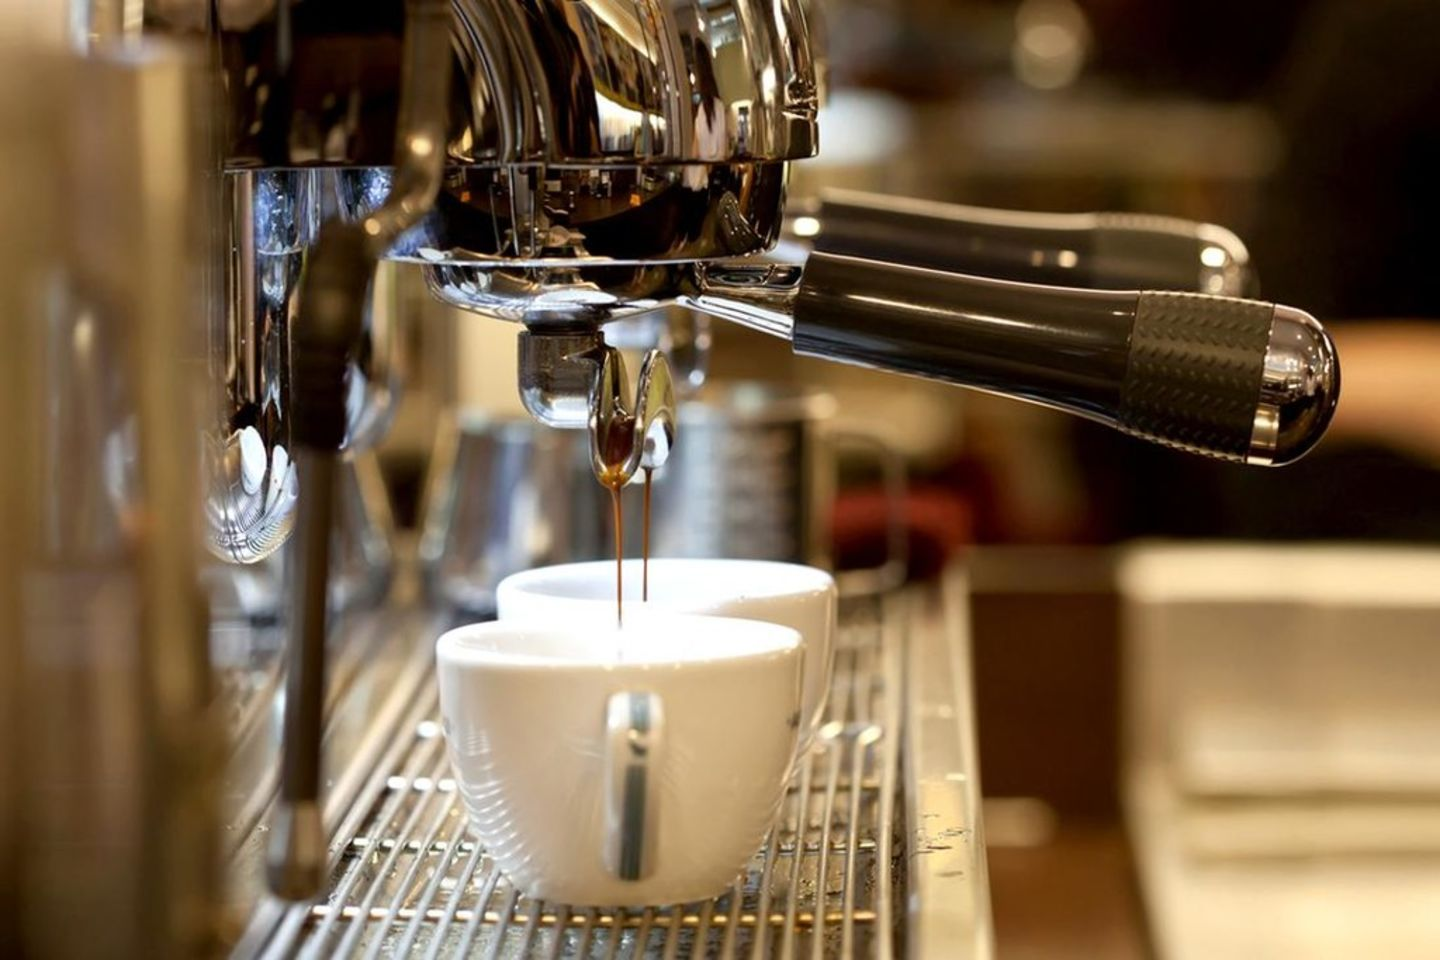 HiDubai-business-air-speciality-coffee-one-person-company-food-beverage-coffee-shops-umm-suqeim-1-dubai